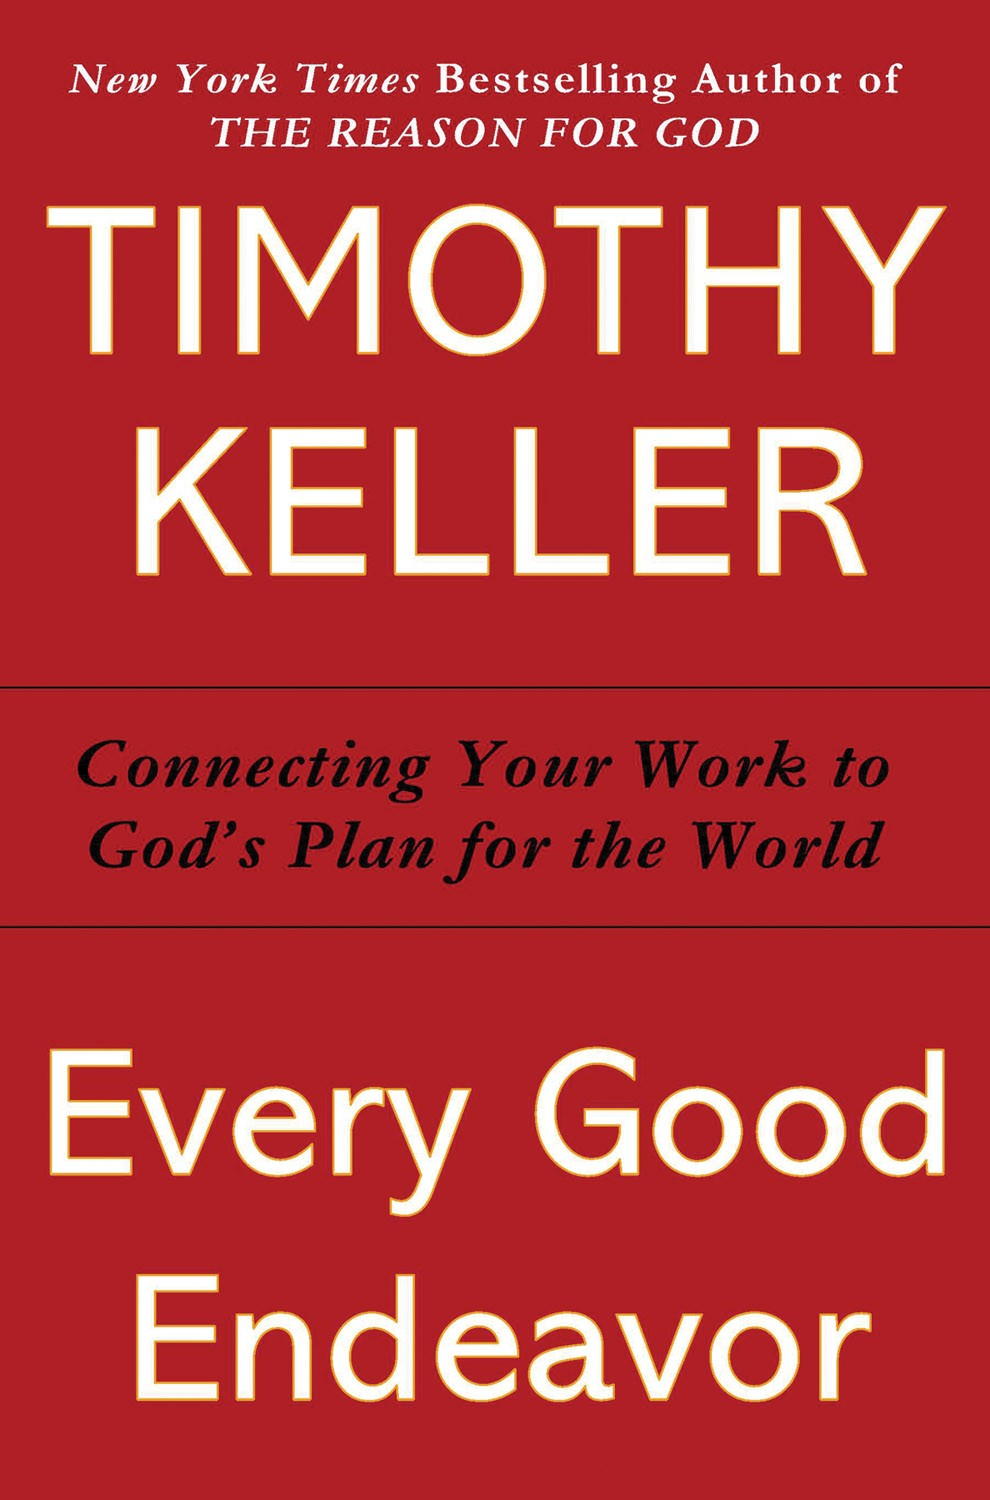 Every Good Endeavor: Connecting Your Work to God's Work by Timothy Keller